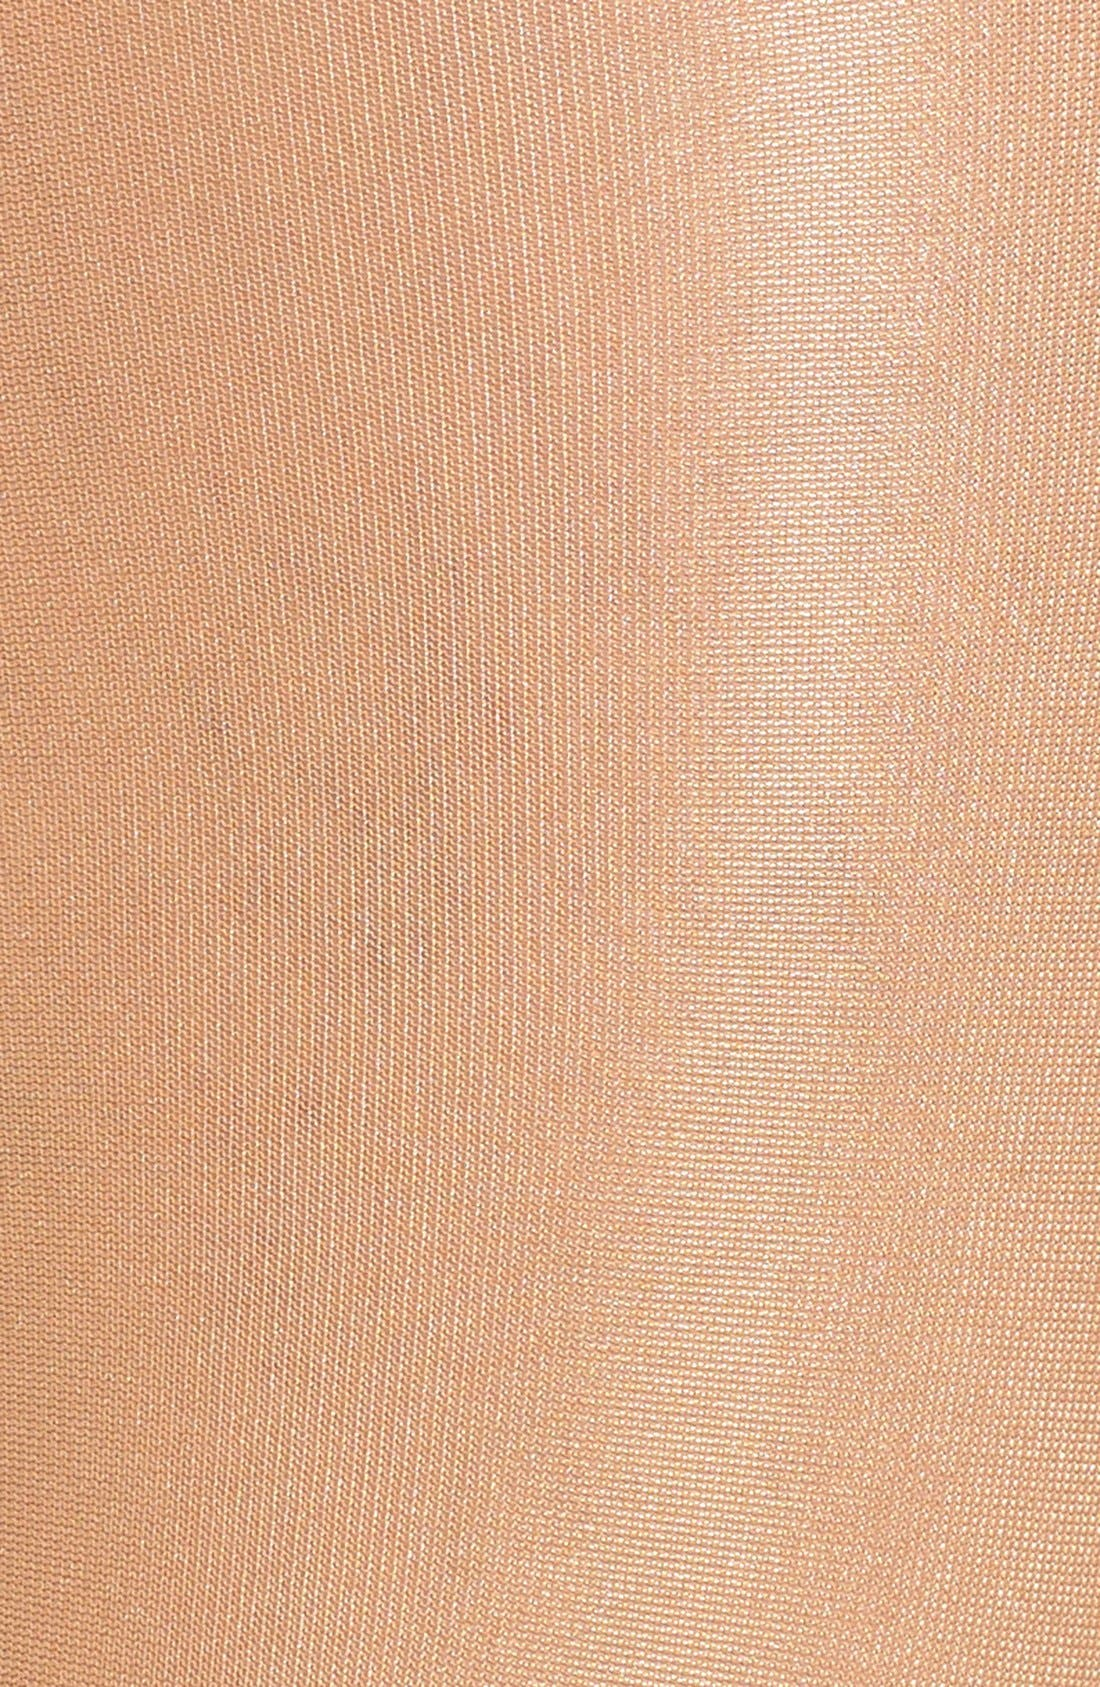 'Neon 40' Pantyhose,                             Alternate thumbnail 3, color,                             Gobi